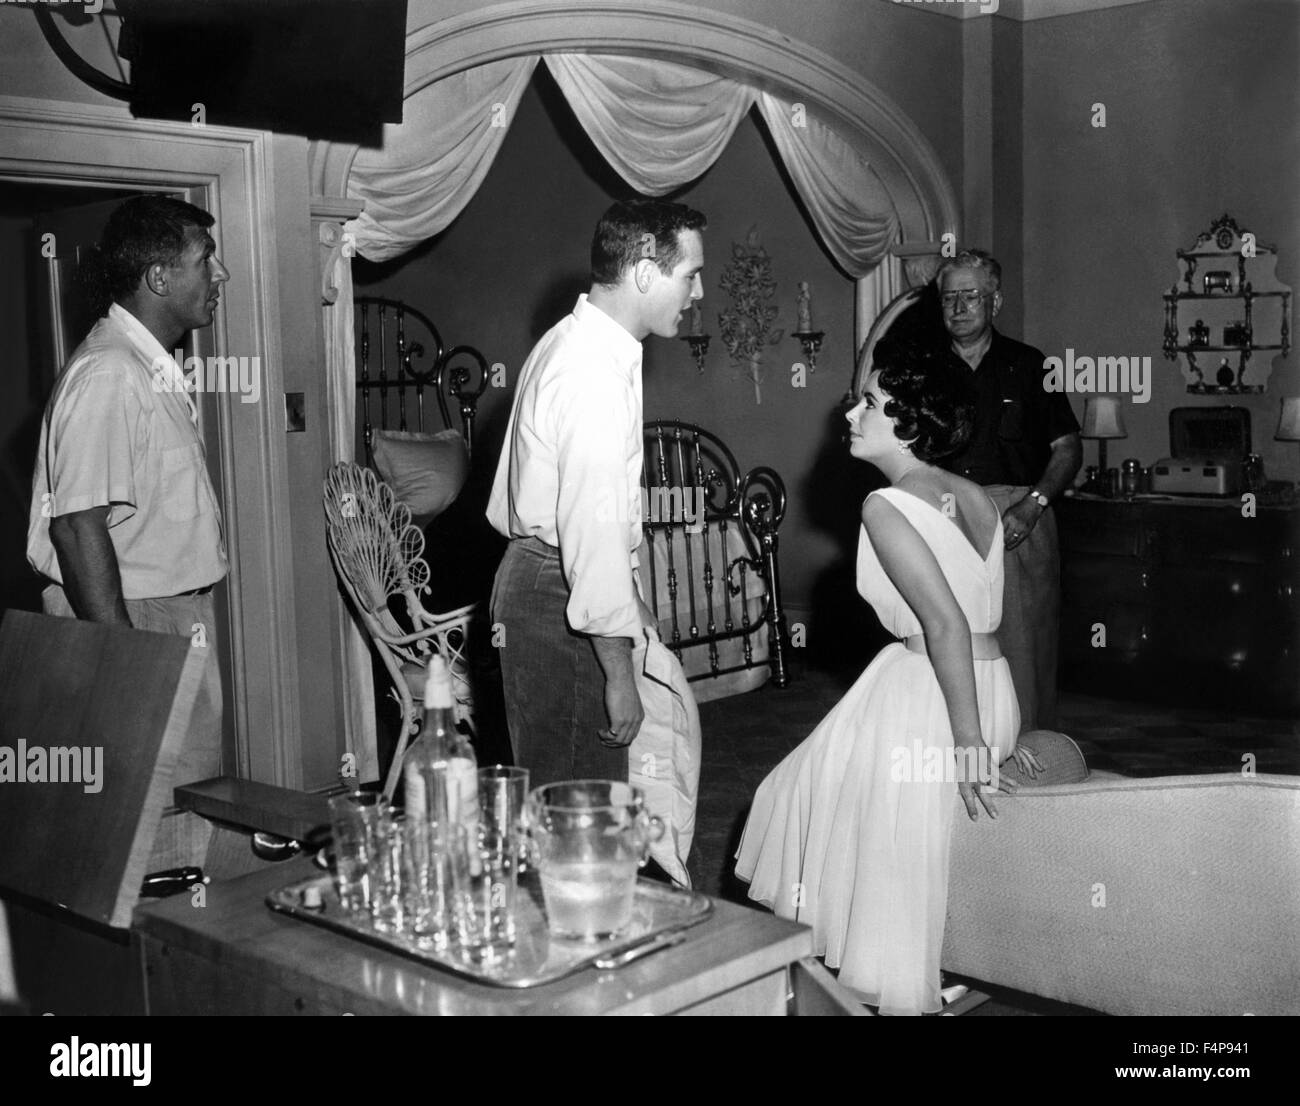 a film analysis of cat on a hot tin roof directed by richard brooks Andrews' production of cat on a hot tin roof the 1958 academy award nominated film starring elizabeth taylor and paul newman was directed by richard brooks.